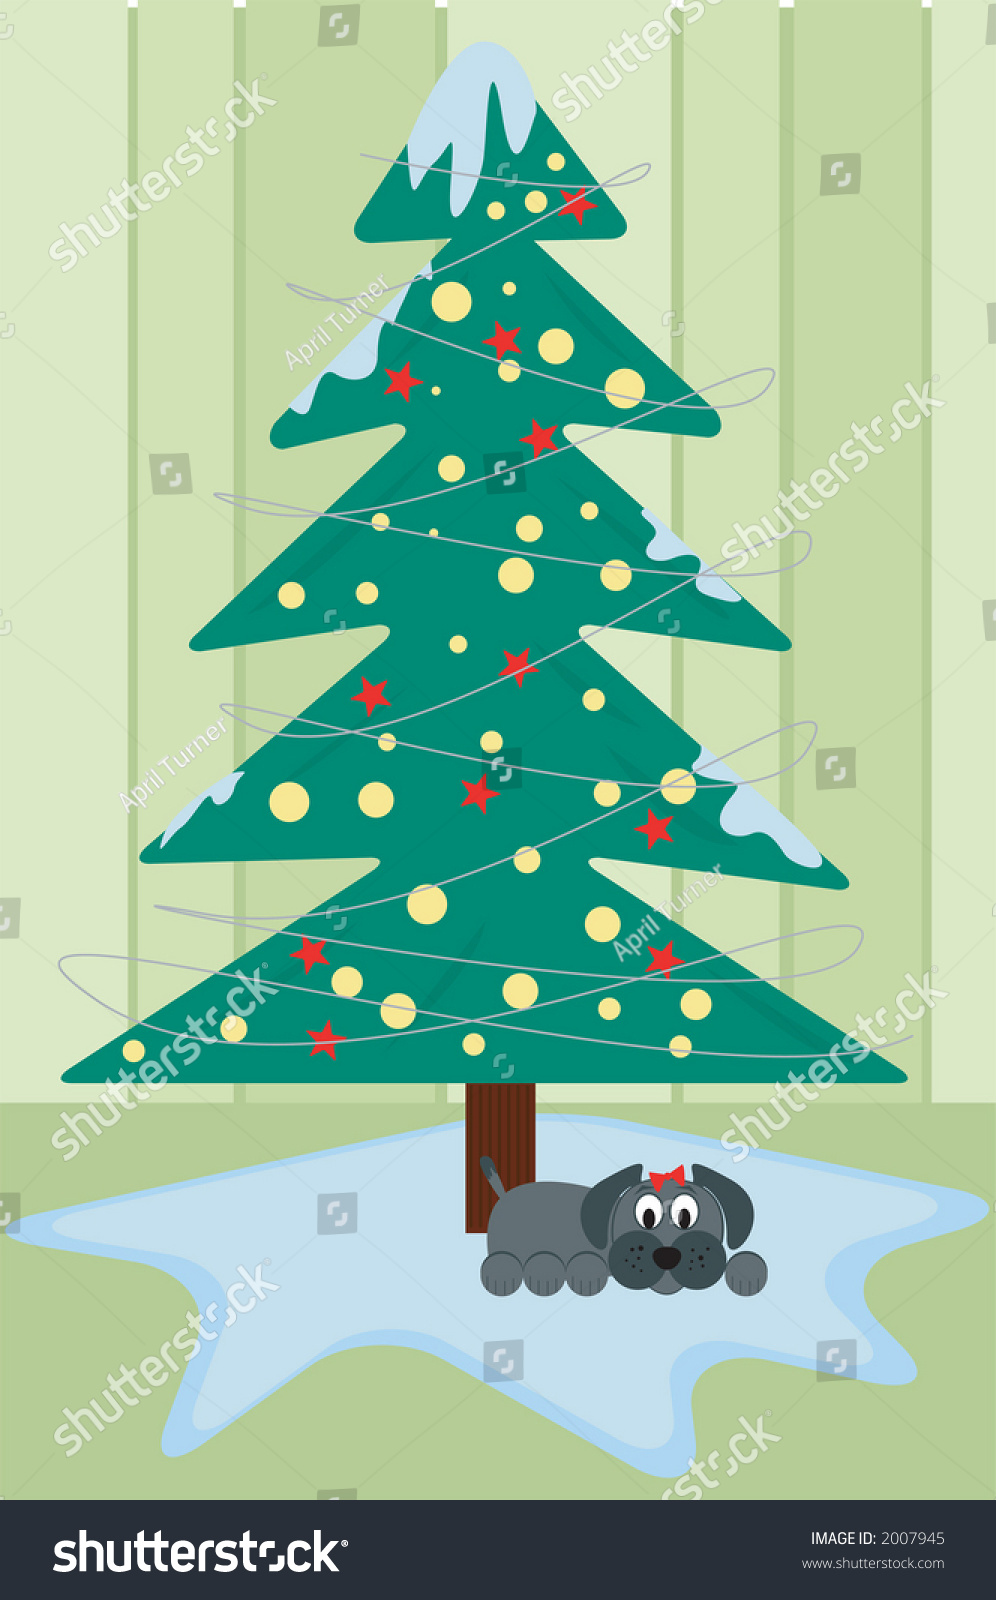 Contemporary Christmas Tree Small Dog Lounging Stock Vector Royalty Free 2007945